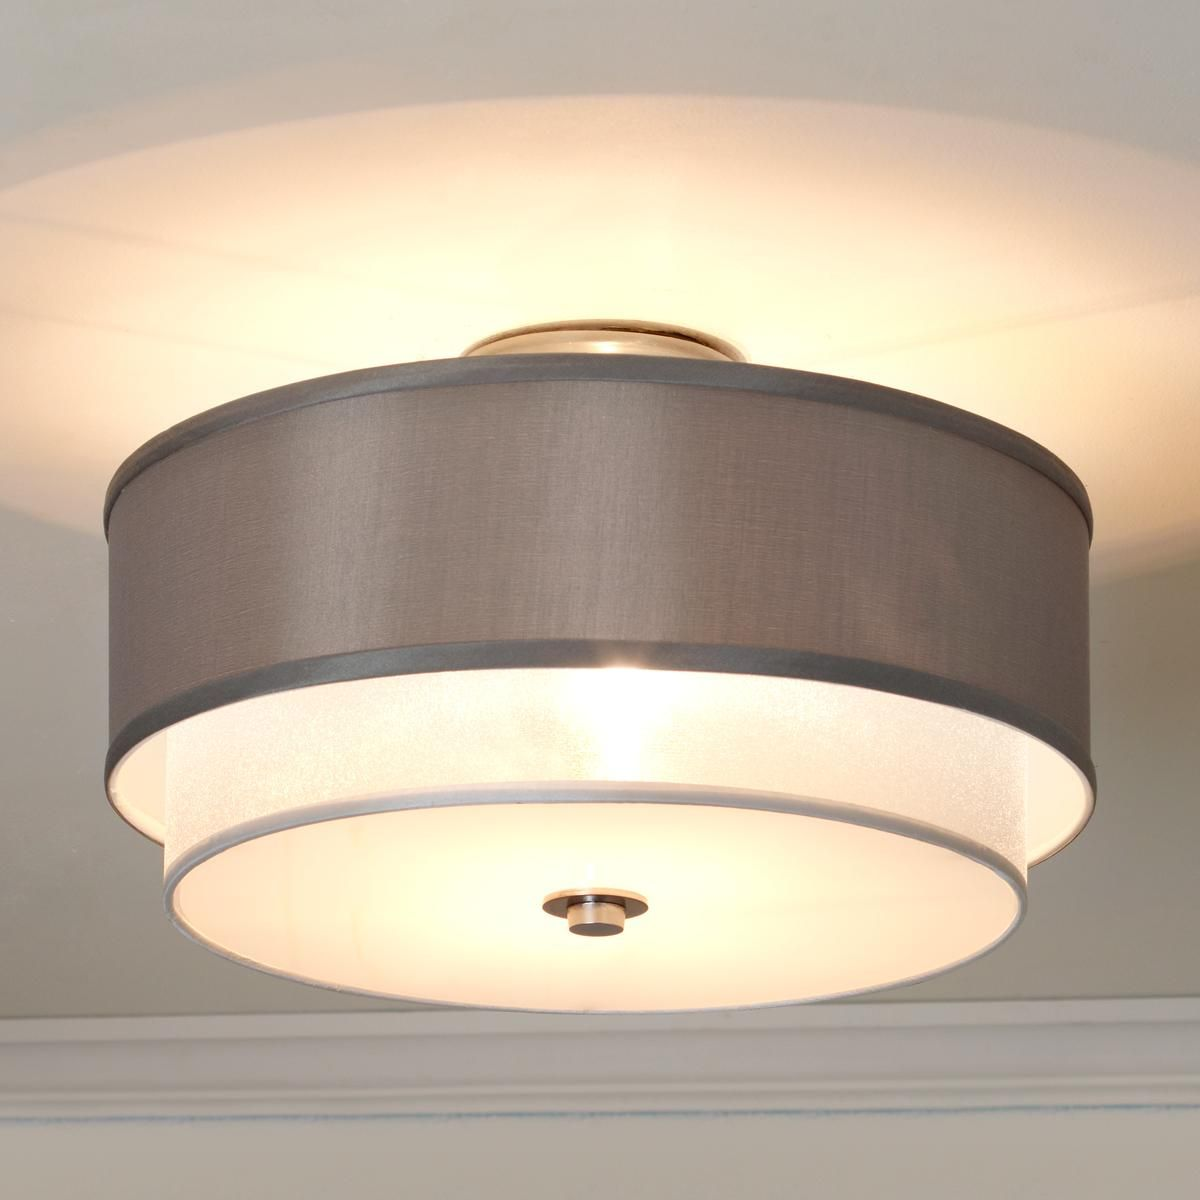 Silver sheer double shade ceiling light drum shade ceiling lights silver sheer double shade ceiling light a pewter silky drum shade layered over a silver organza drum shade takes modern elegance to the next level aloadofball Choice Image